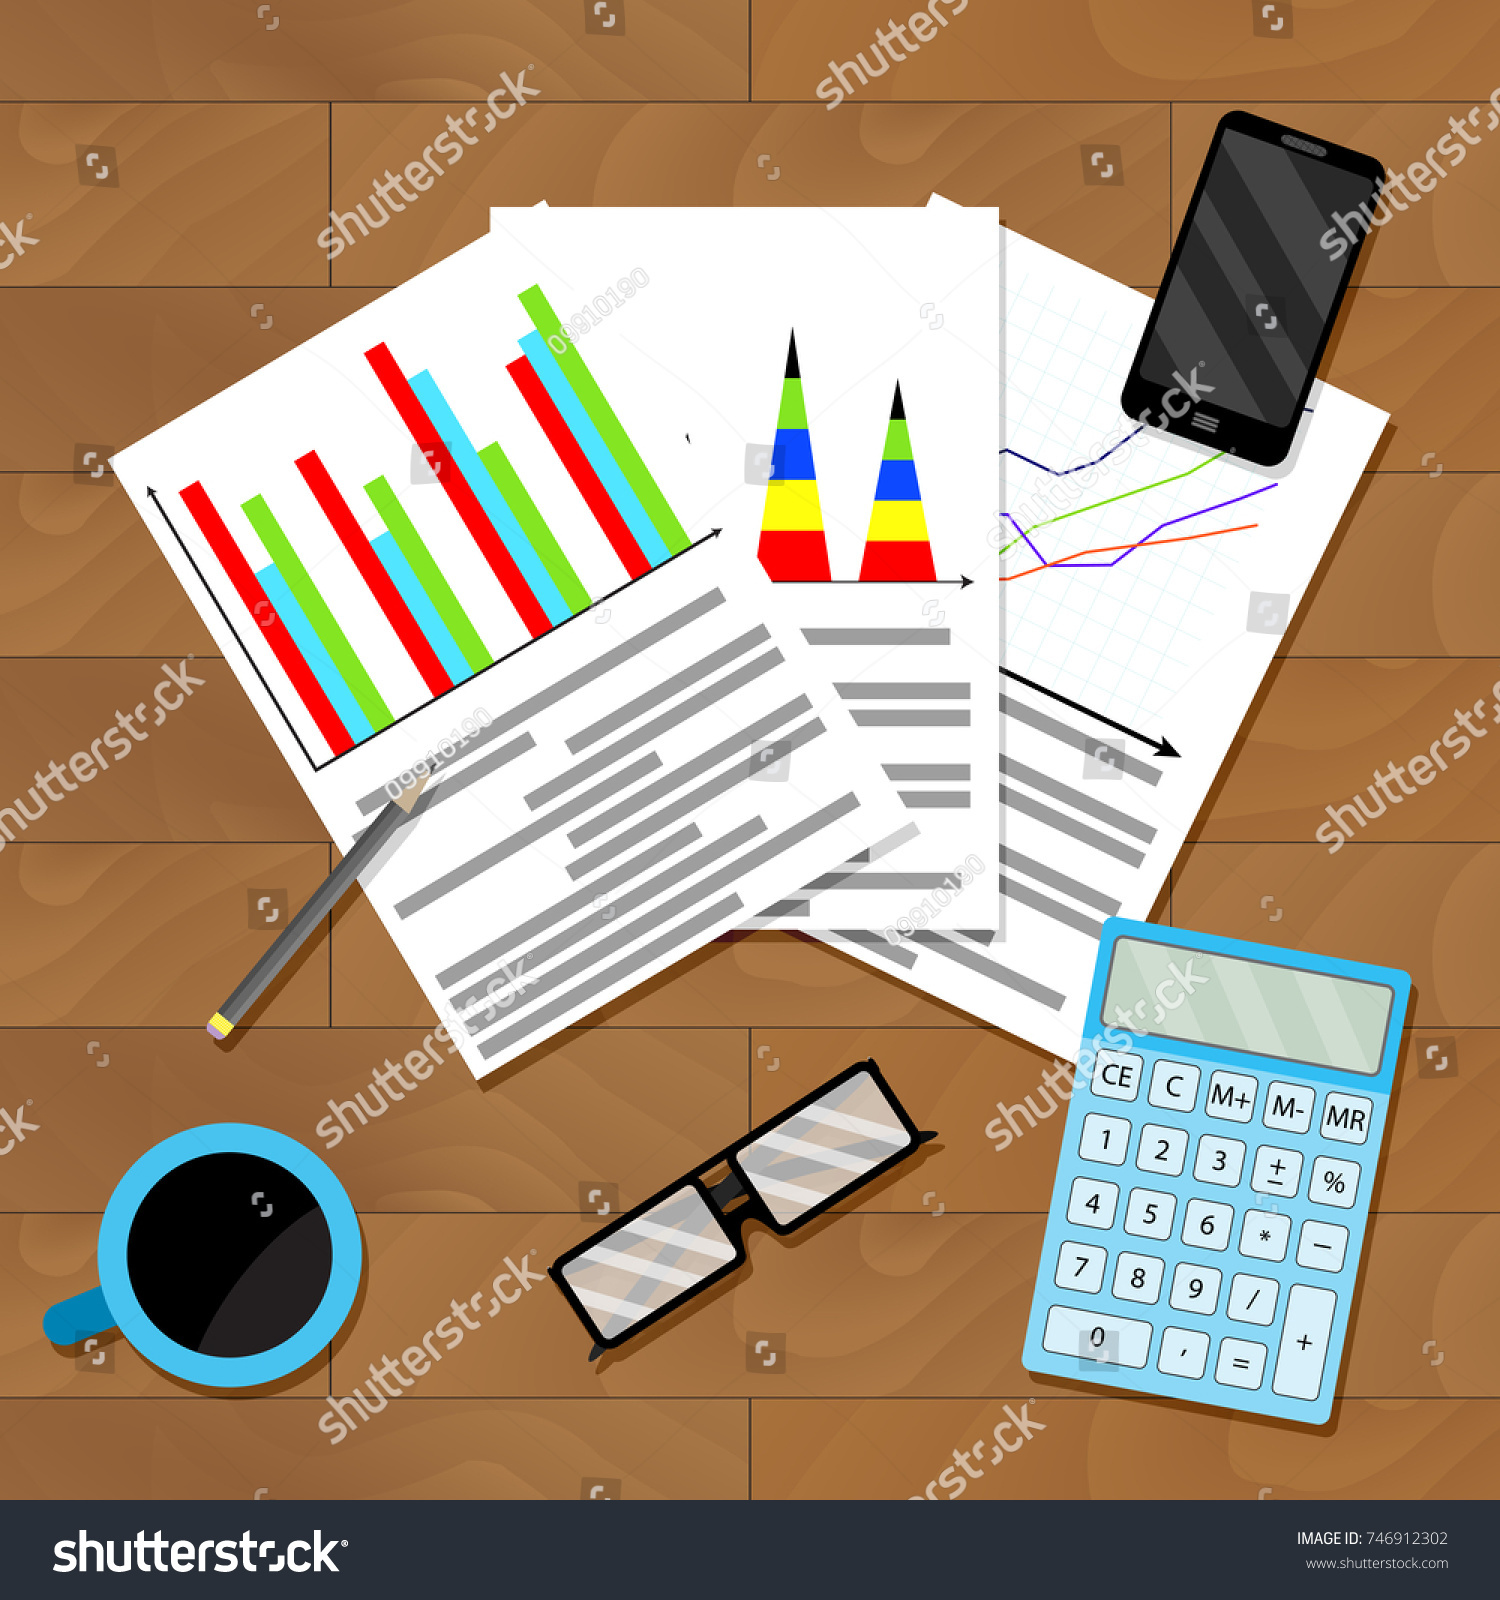 Document diagram graph on table research stock illustration document diagram graph on table research stock illustration 746912302 shutterstock ccuart Image collections